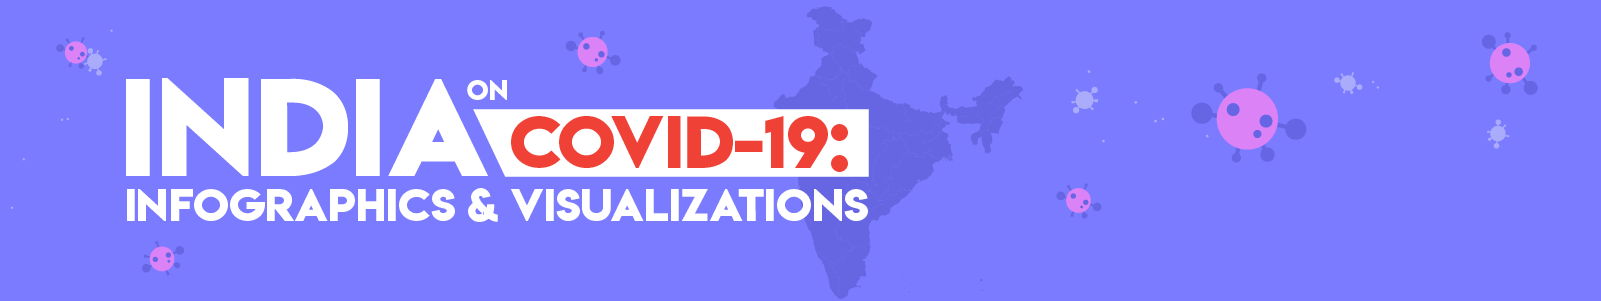 Banner of India on Covid-19: Infographics & Visualizations